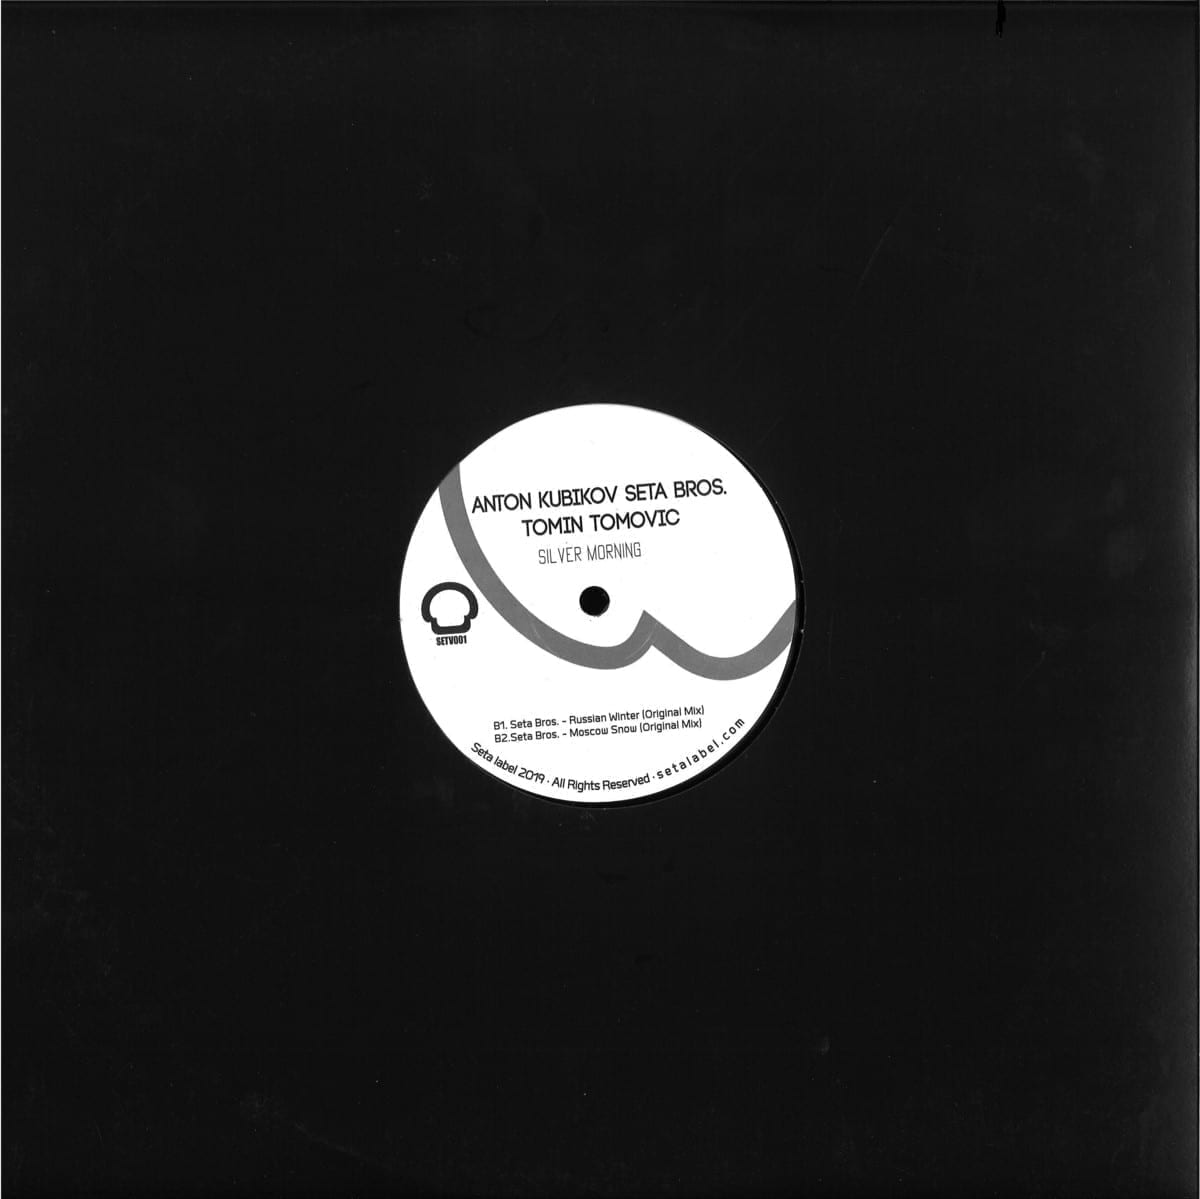 Anton Kubikov Seta Bros - Silver Morning [Seta Label] back